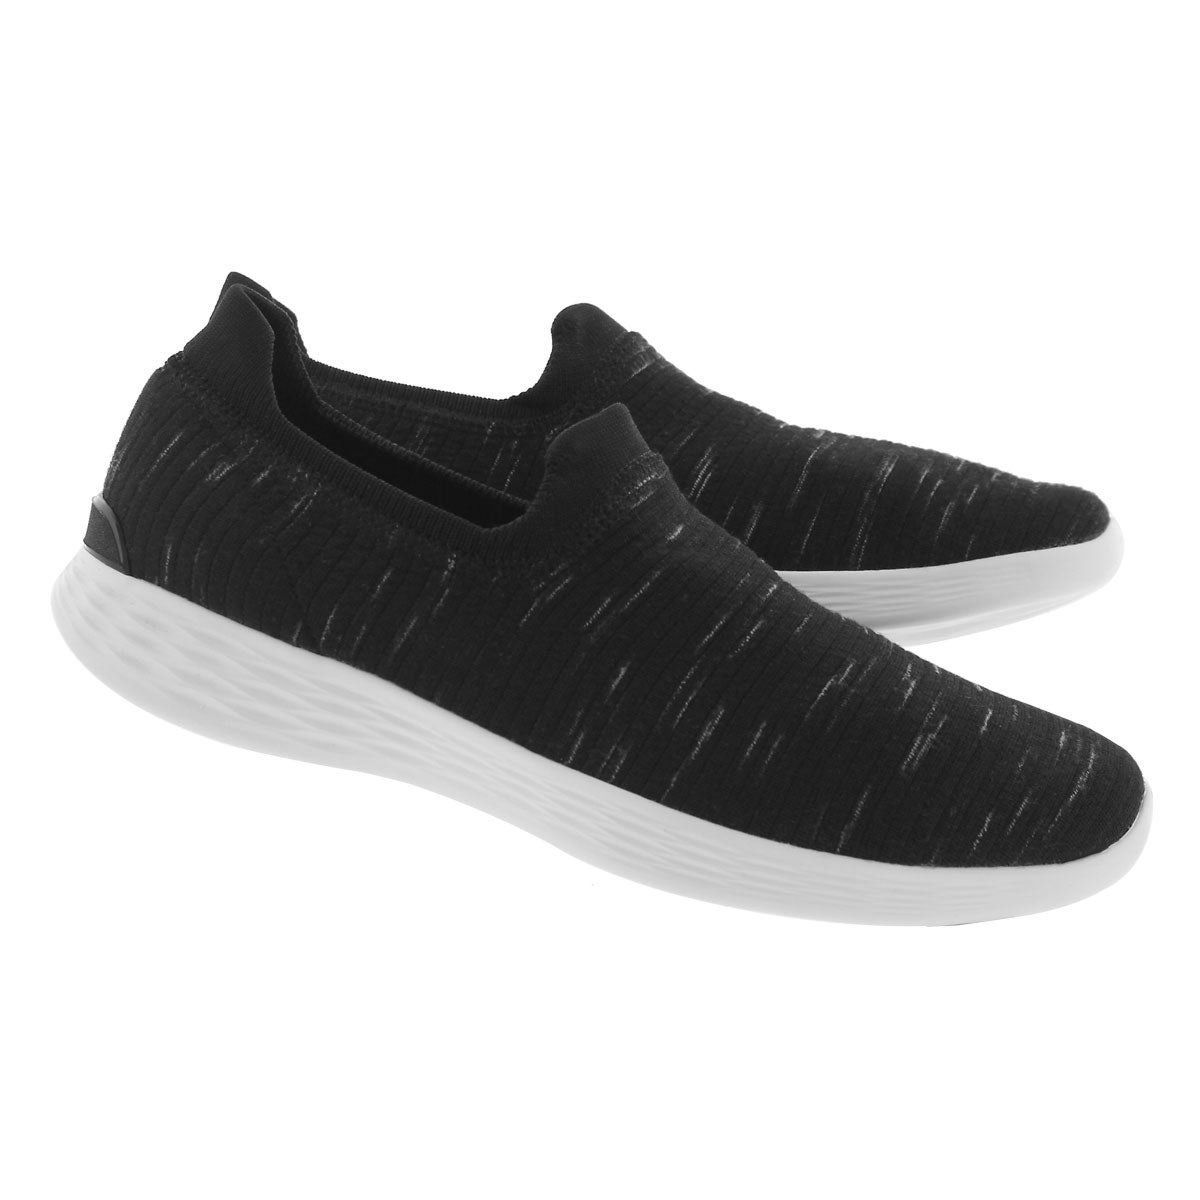 Lds You Define blk/wht slip on shoe